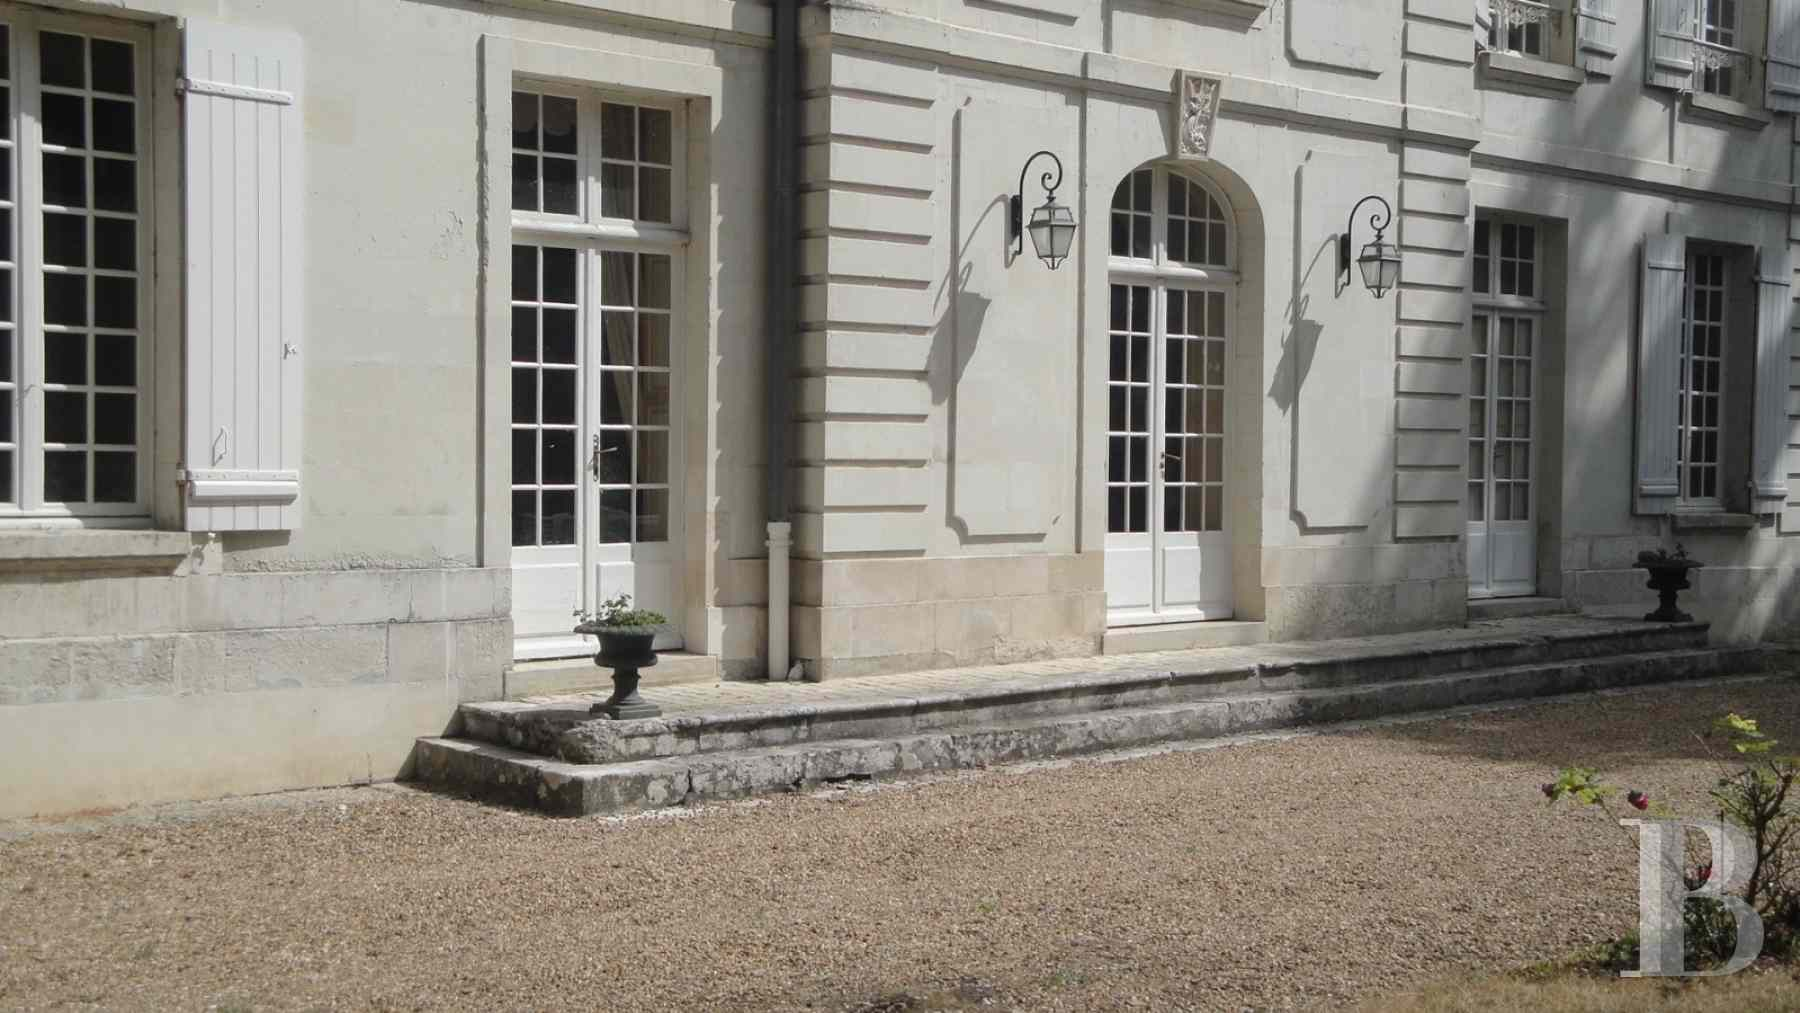 property for sale France center val de loire large luxurious - 4 zoom